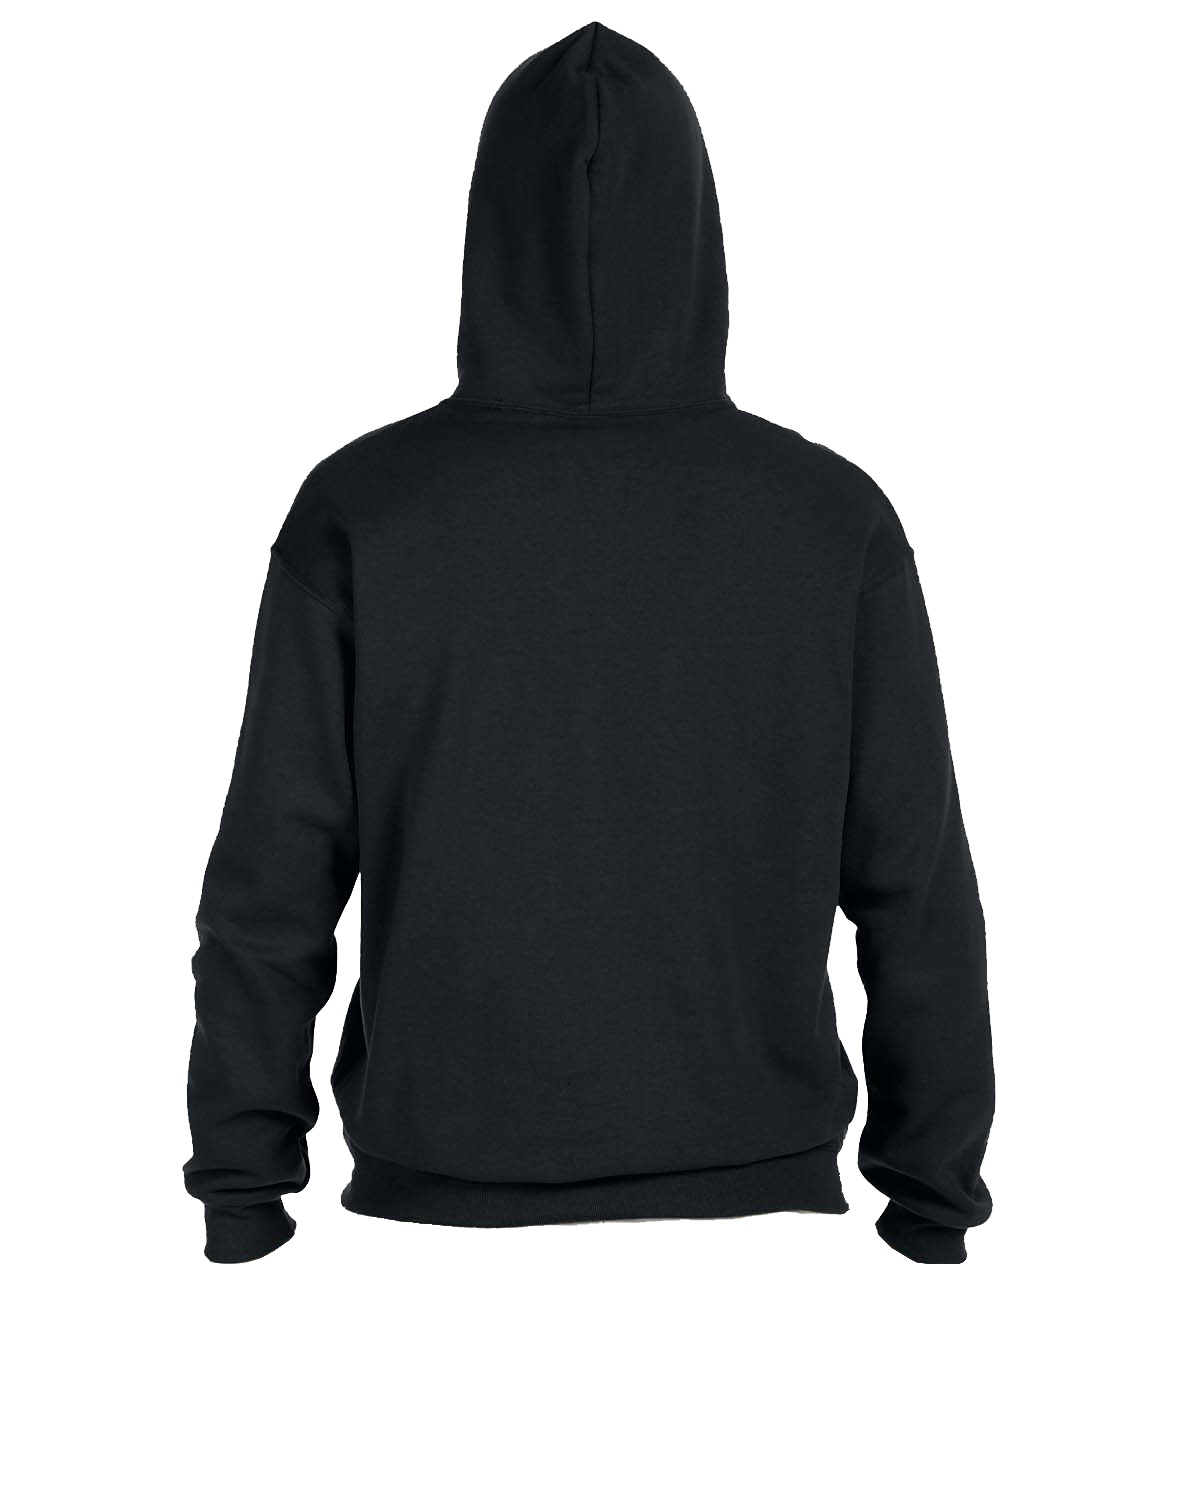 Adult black hooded sweatshirt back